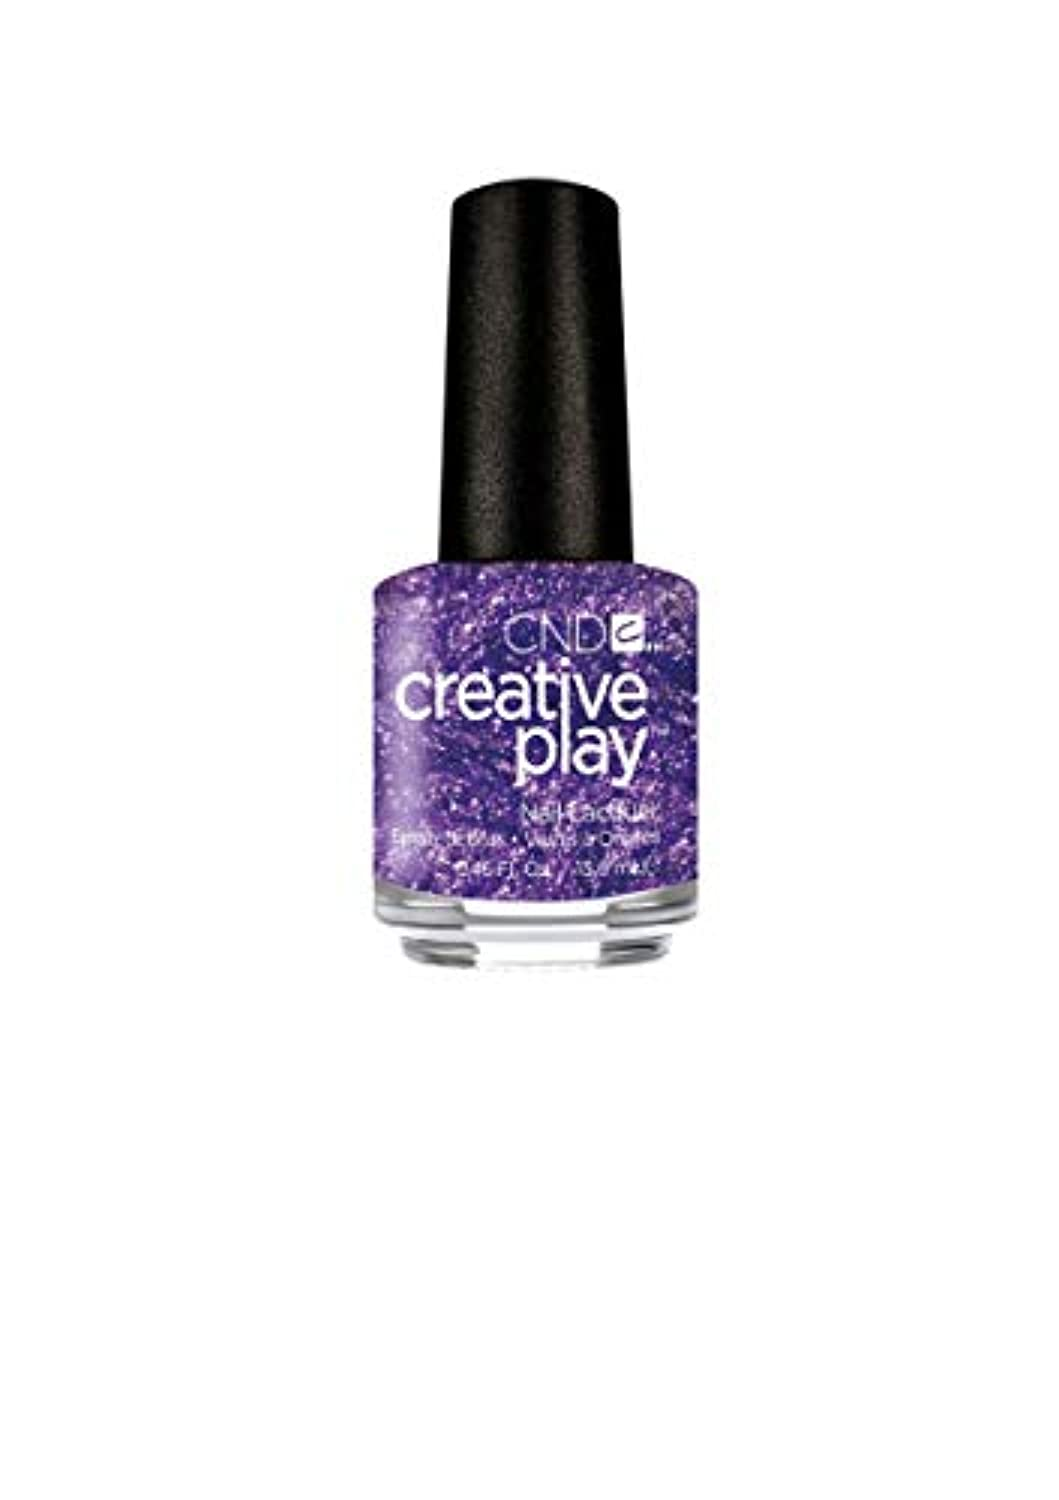 CND Creative Play Lacquer - Miss Purplelarity - 0.46oz / 13.6ml